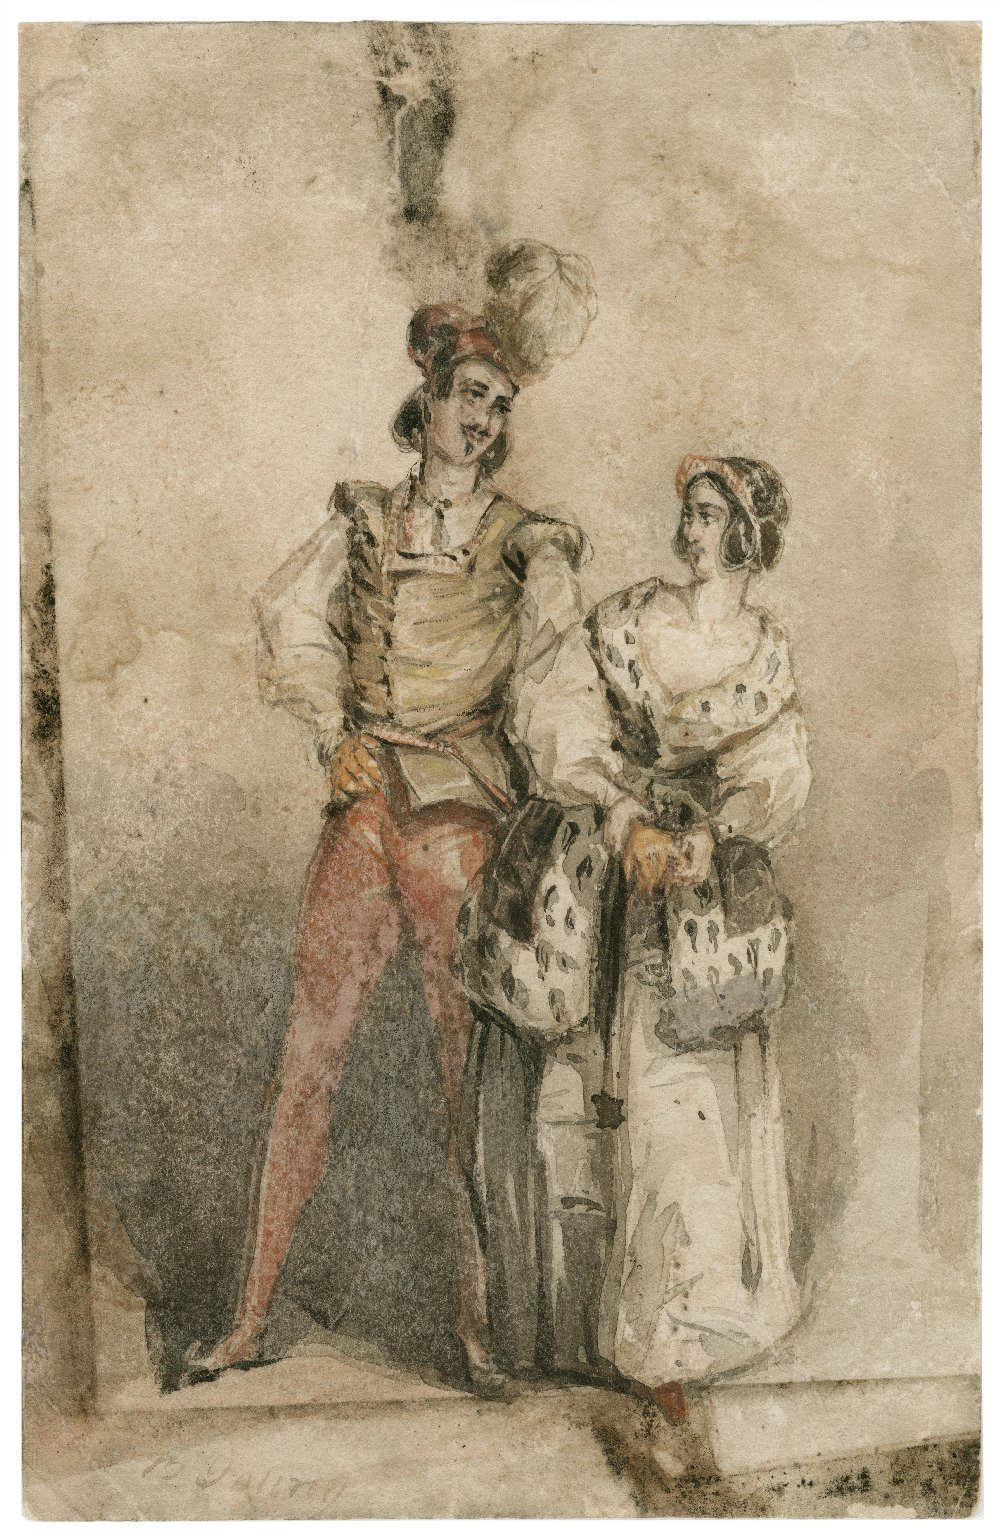 [King Henry IV, pt. 1: two figures conversing, probably Hotspur and Lady Percy] [graphic] / C.B. Young.